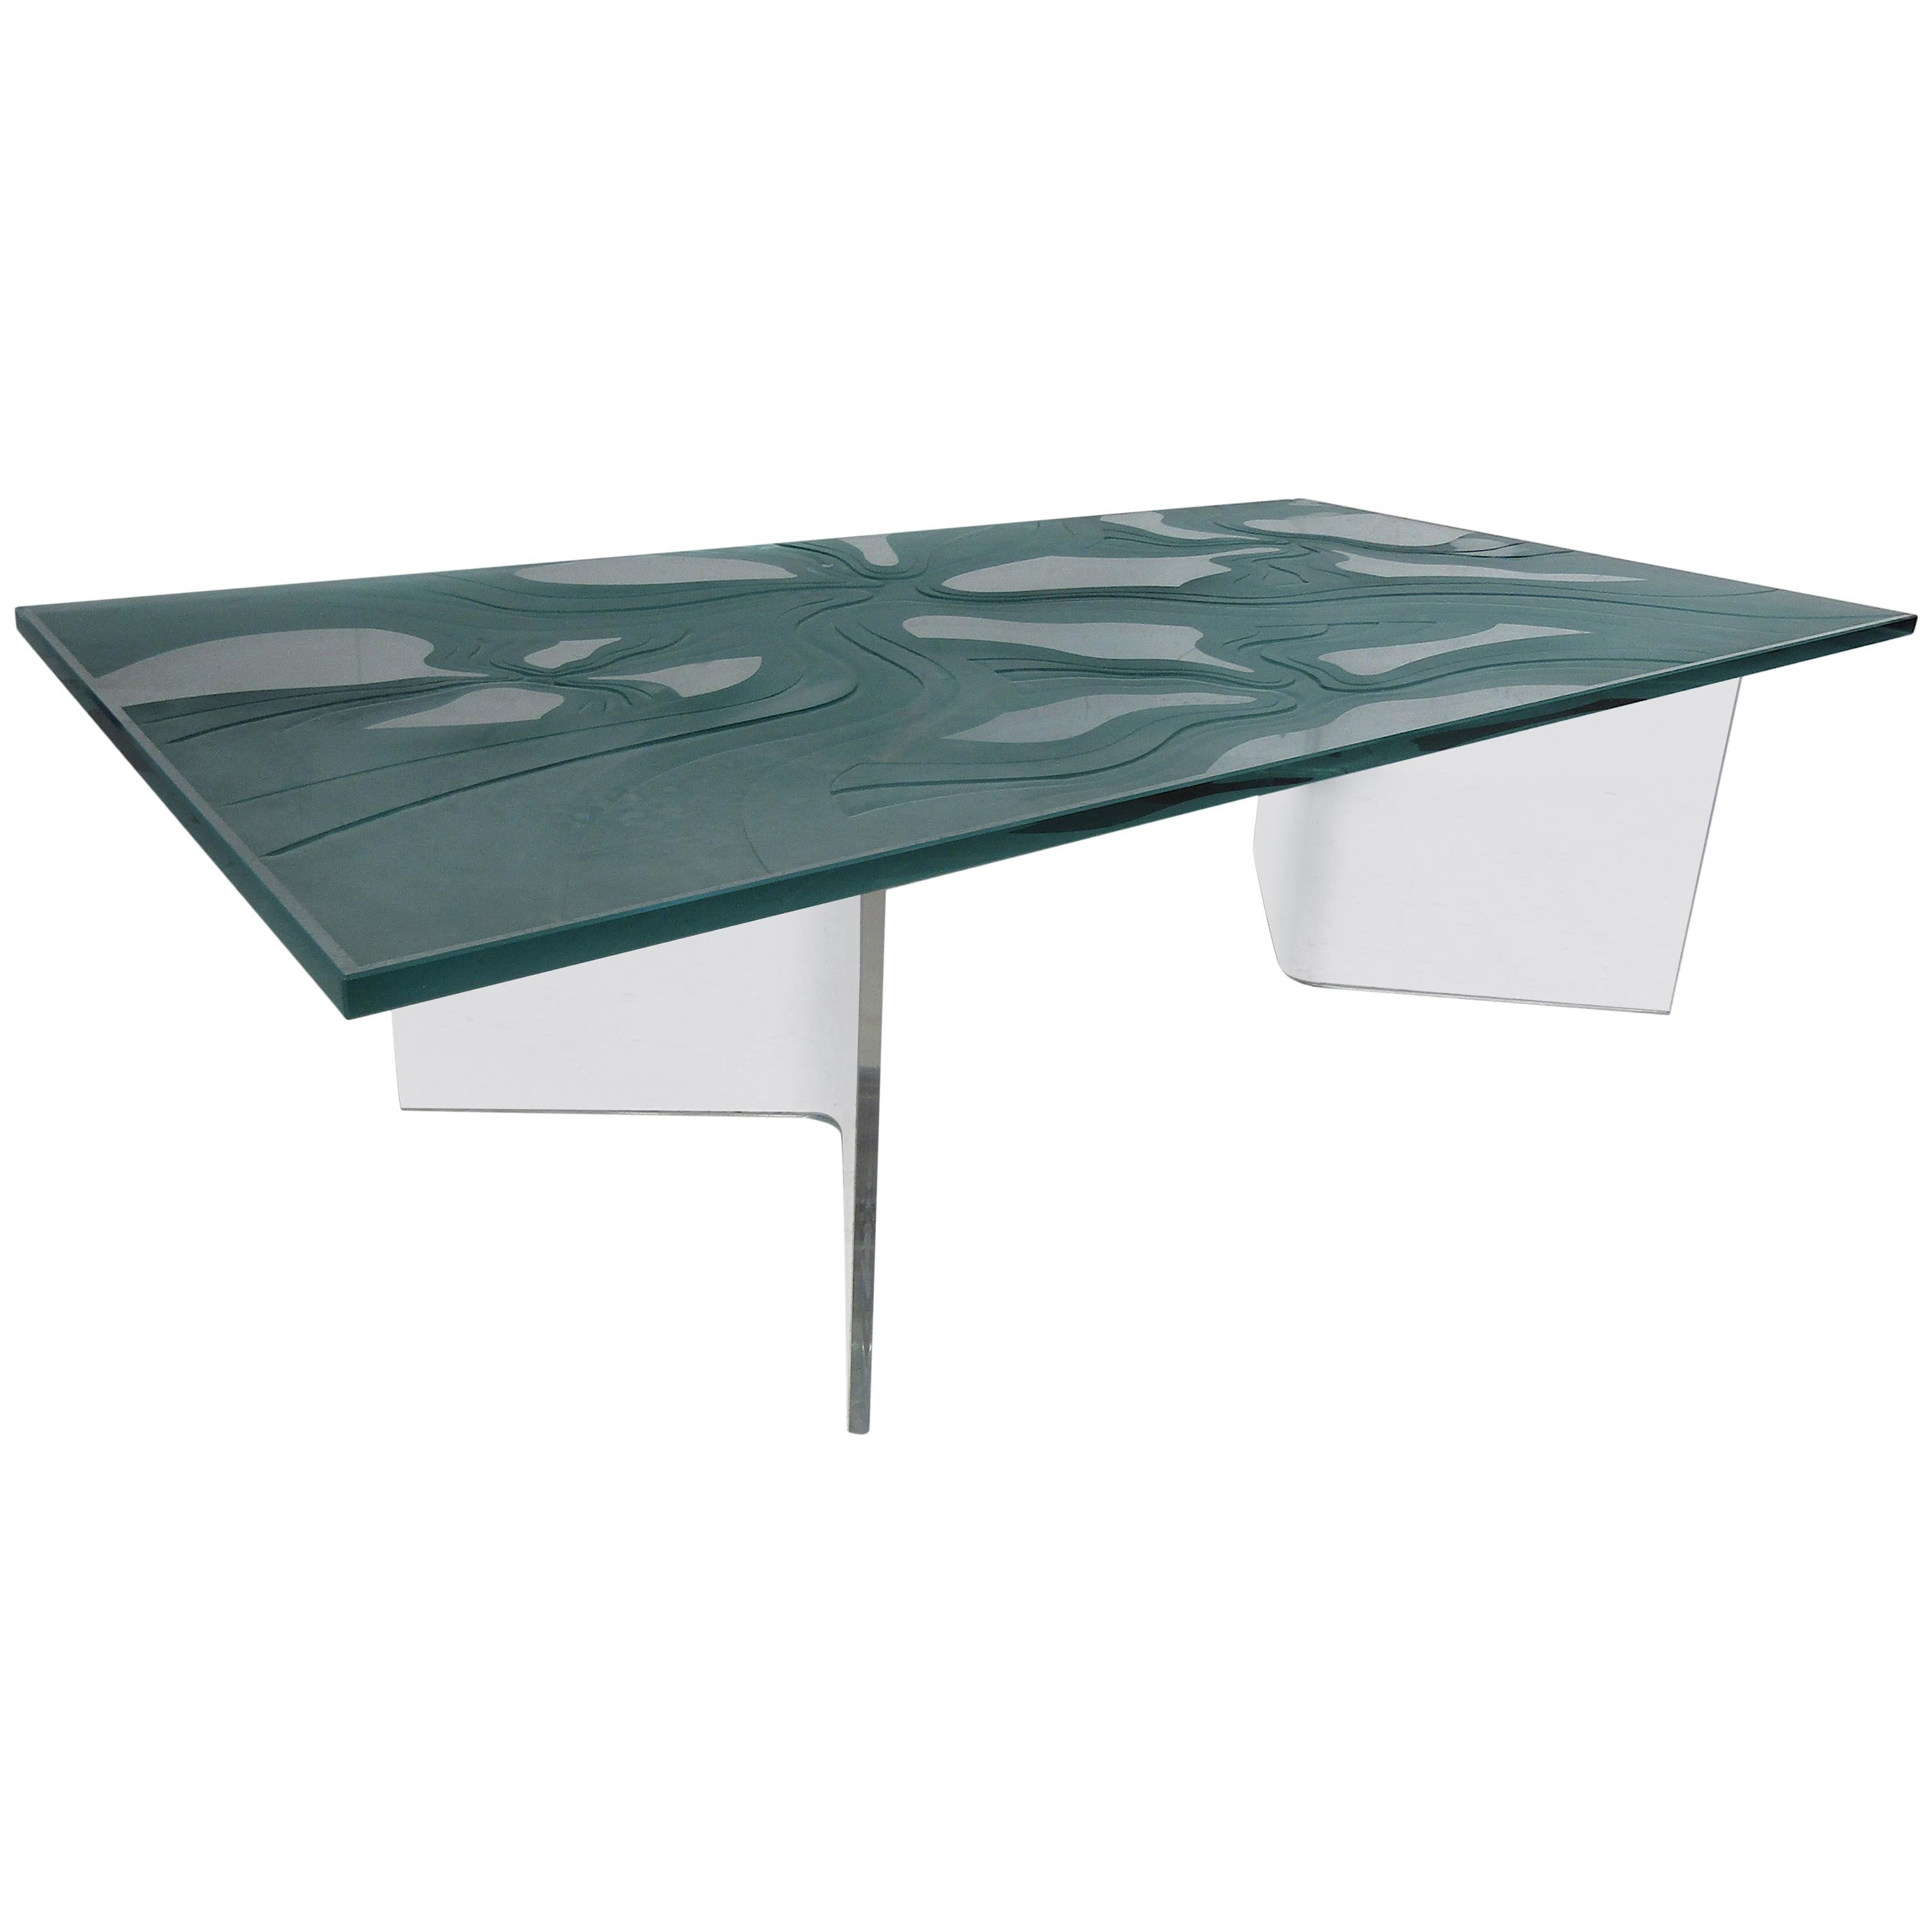 Midcentury Decorative Frosted Glass Top Coffee Table